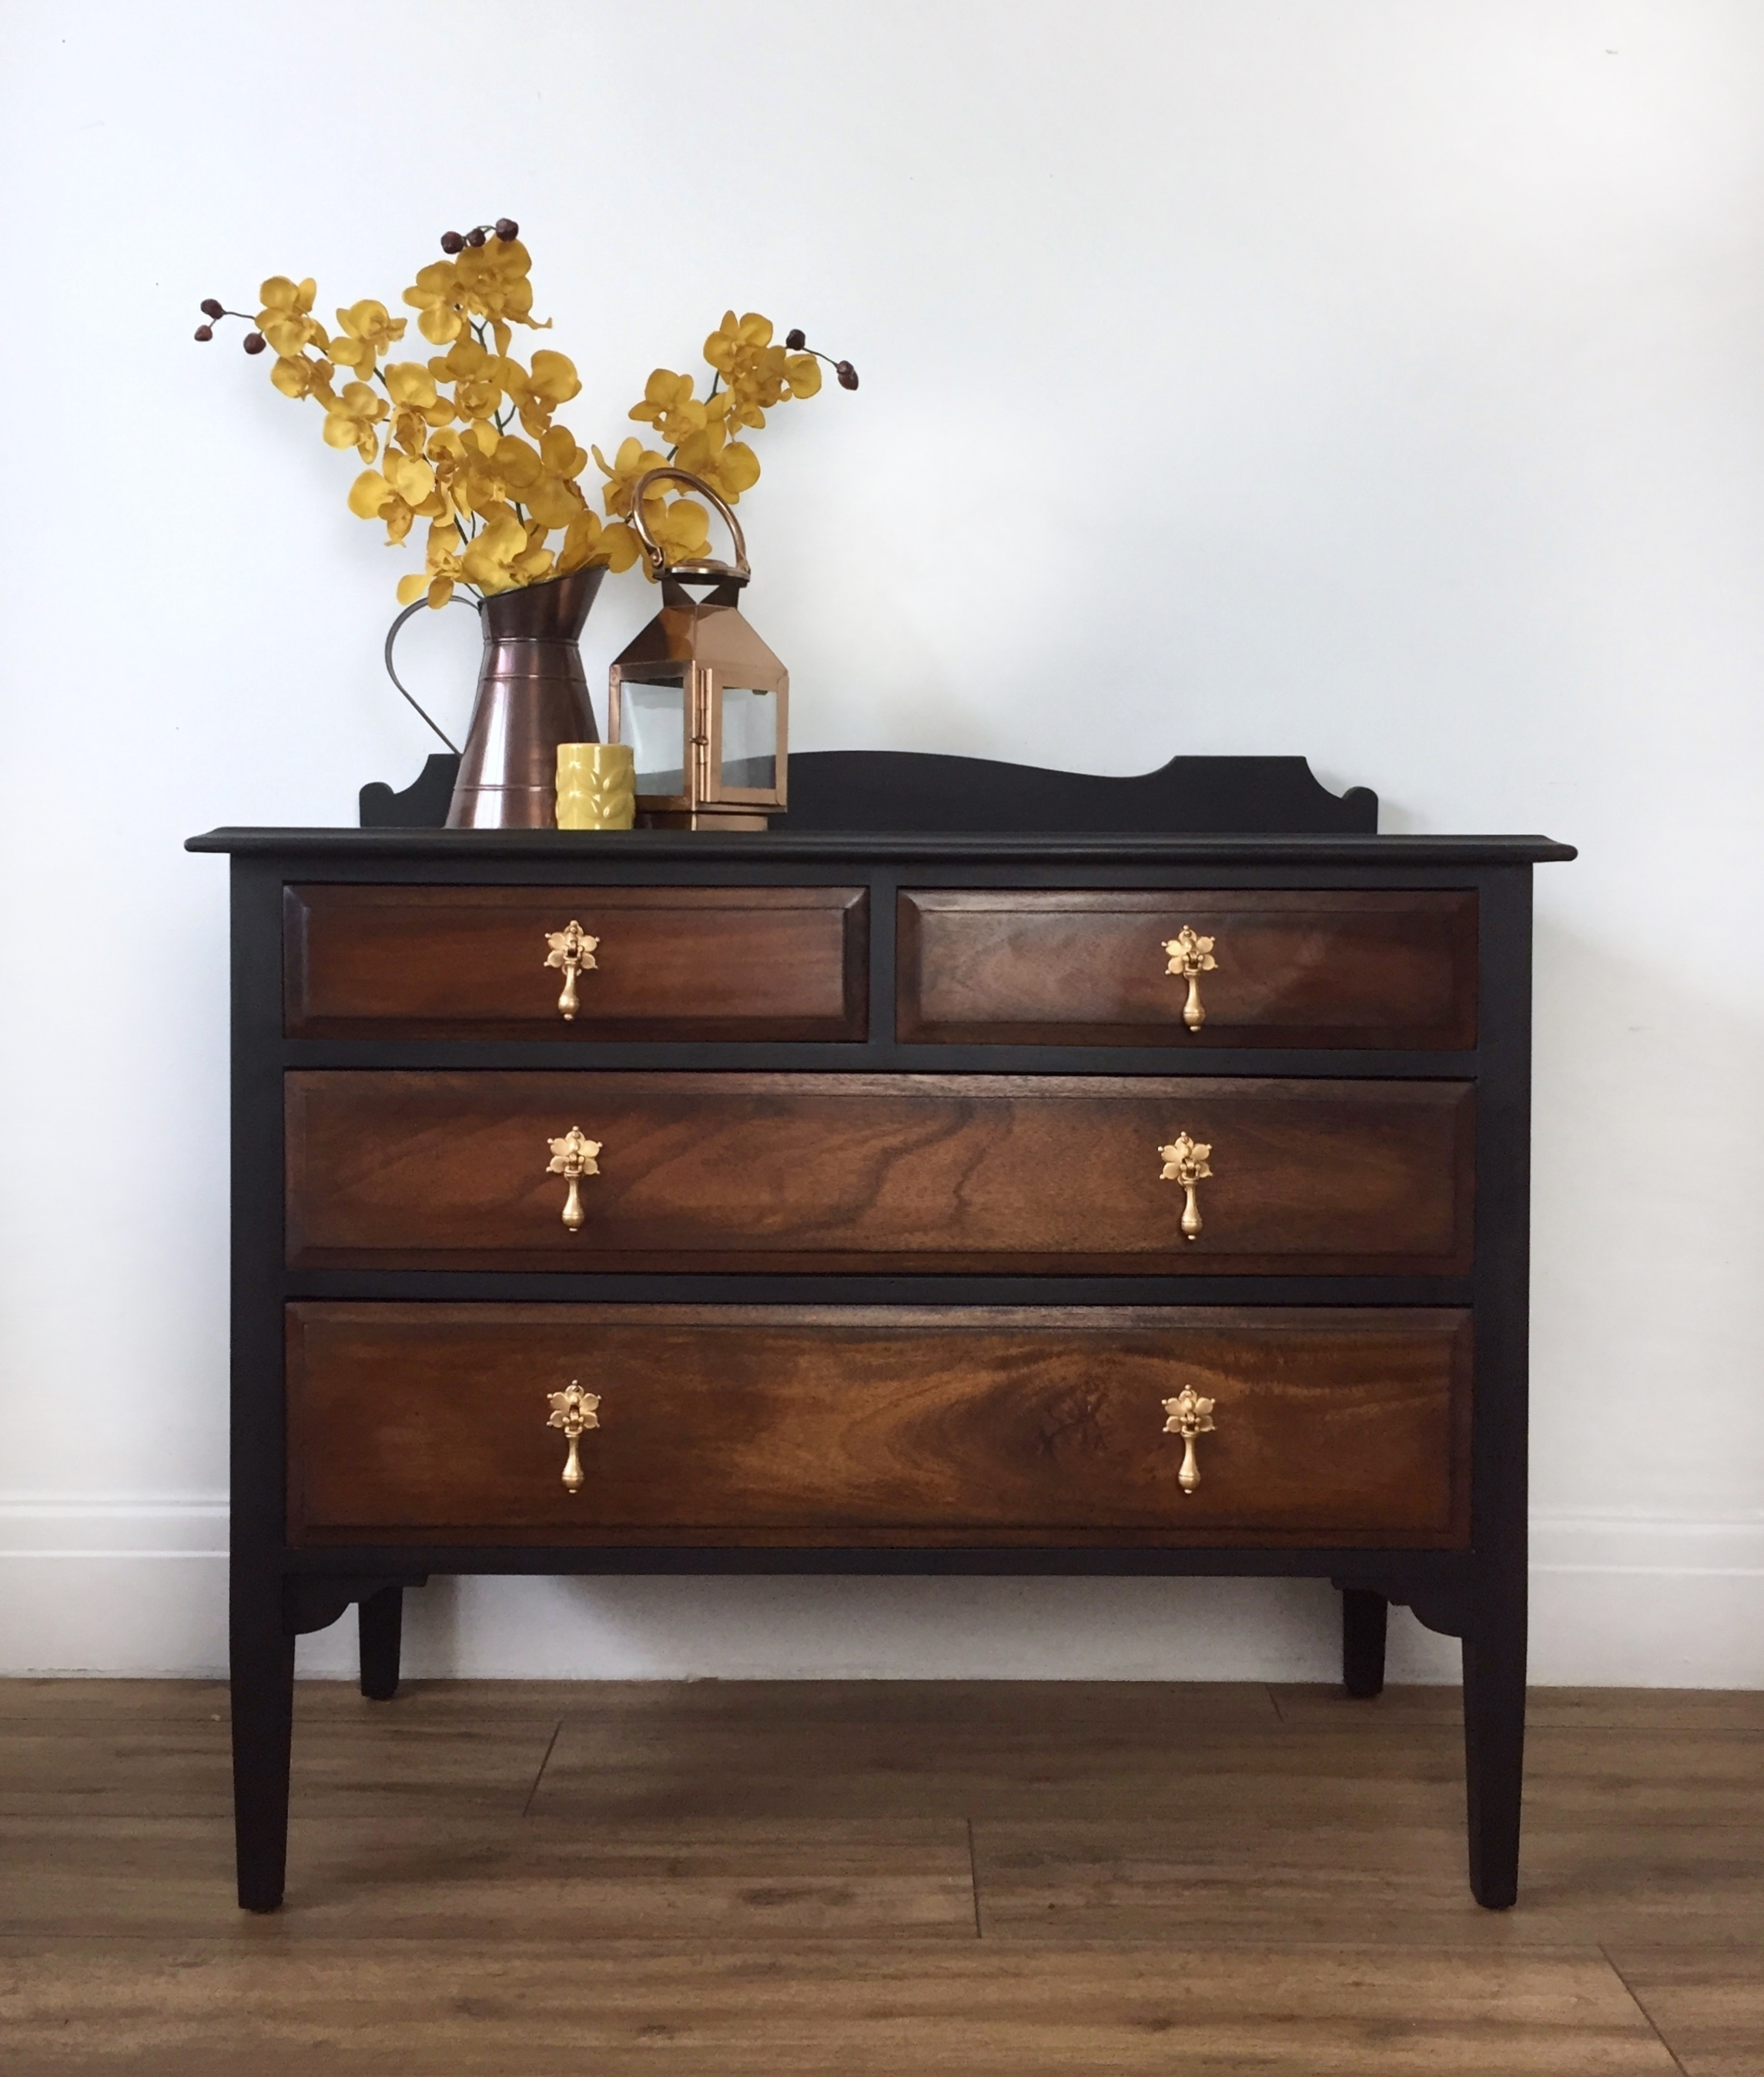 lowest price 271d7 b1d55 Black And Dark Wood Chest Of Drawers With Vintage Gold Handles